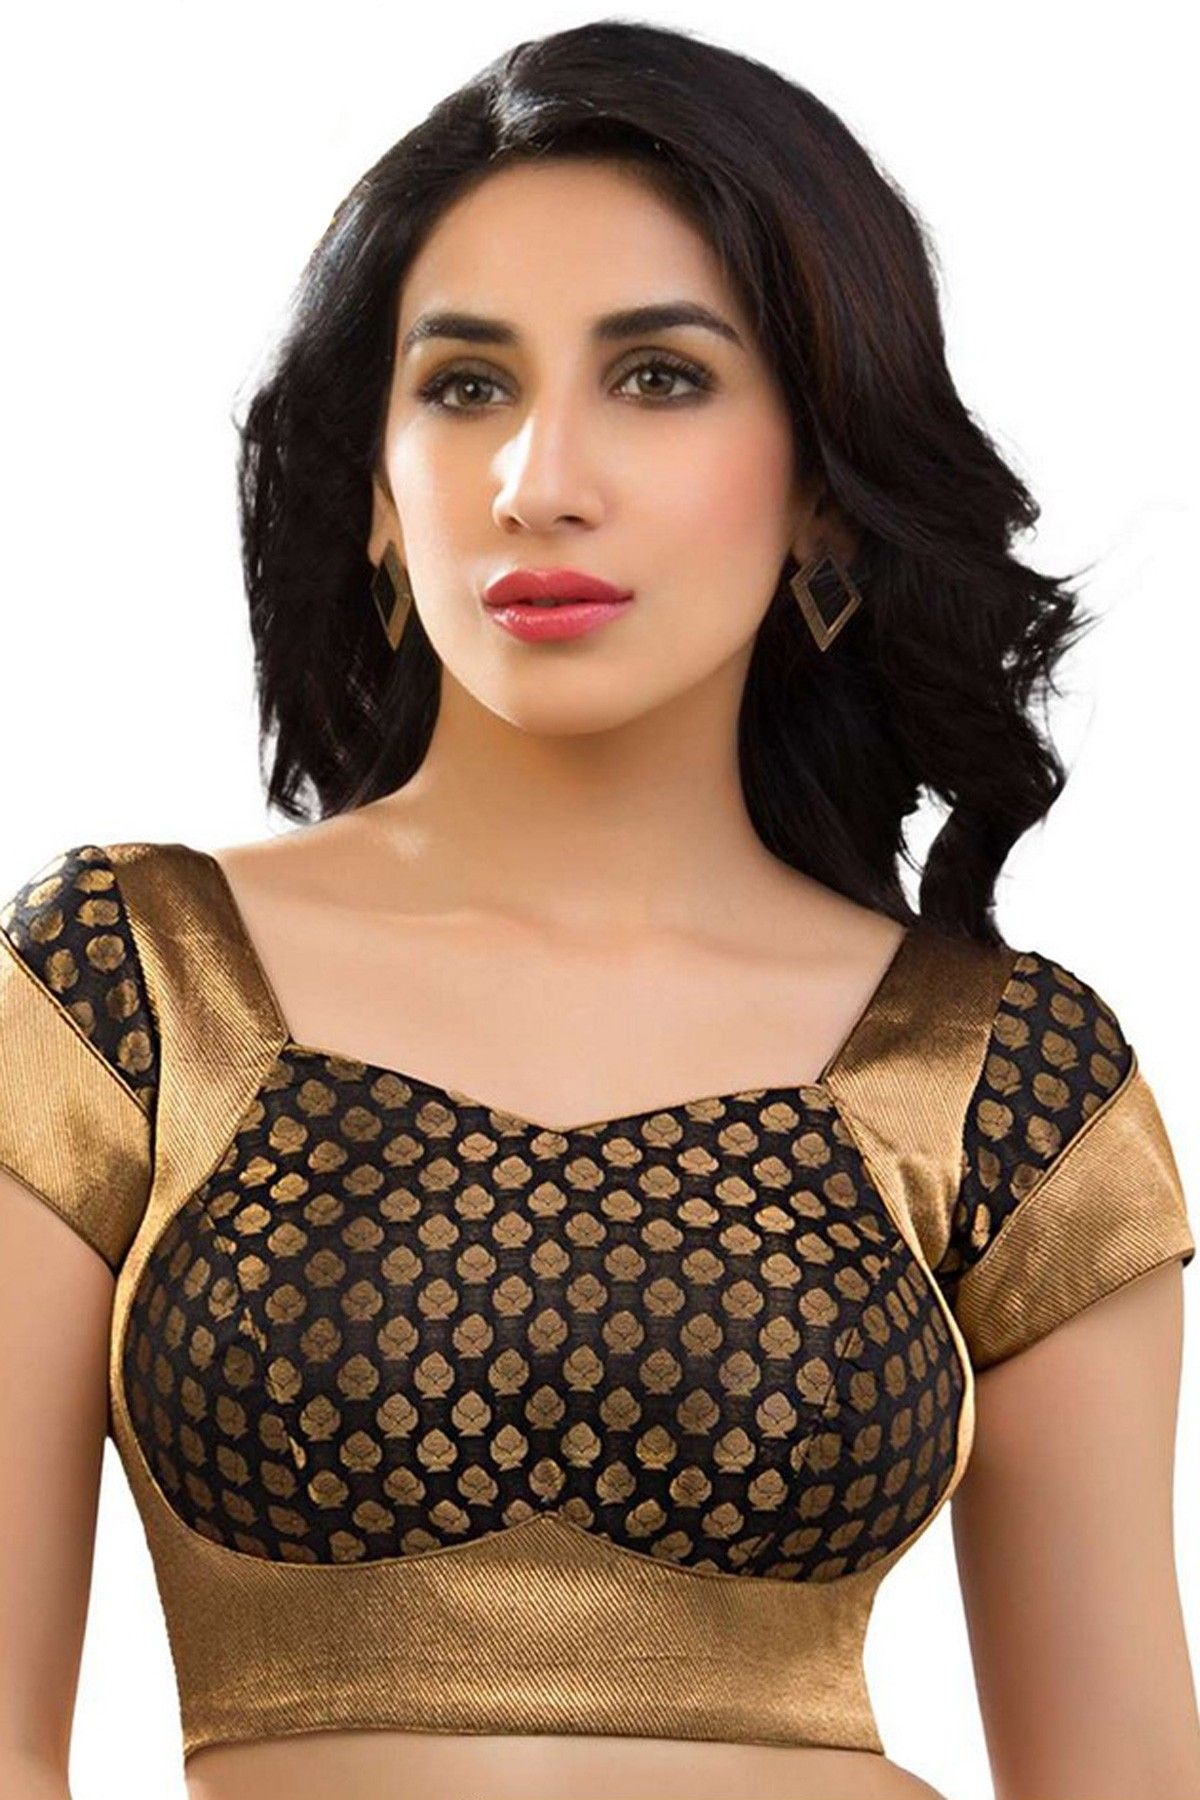 Beige golden brocade blouse blouse designs blouse designs for sarees - Black Antique Gold Banarasi Brocade Festive Wear Blouse With Back Deep U